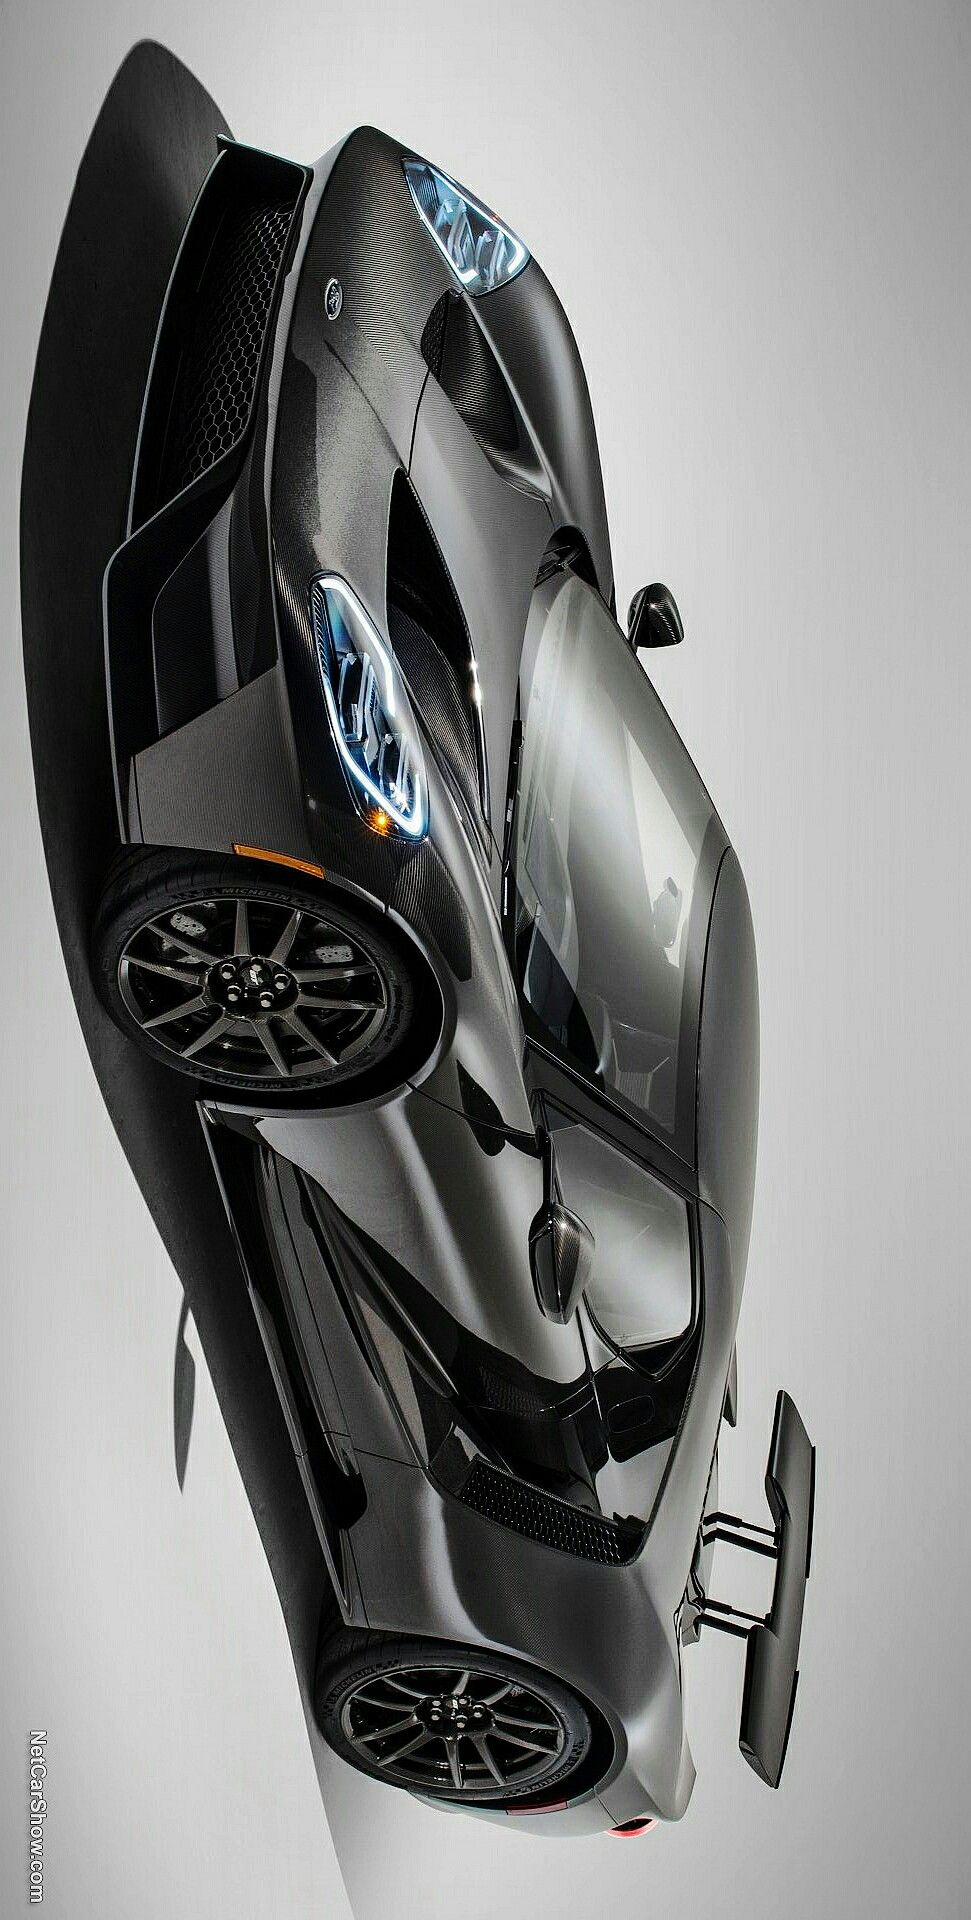 2020 Ford Gt Liquid Carbon Edition Image Provided By Netcarshow